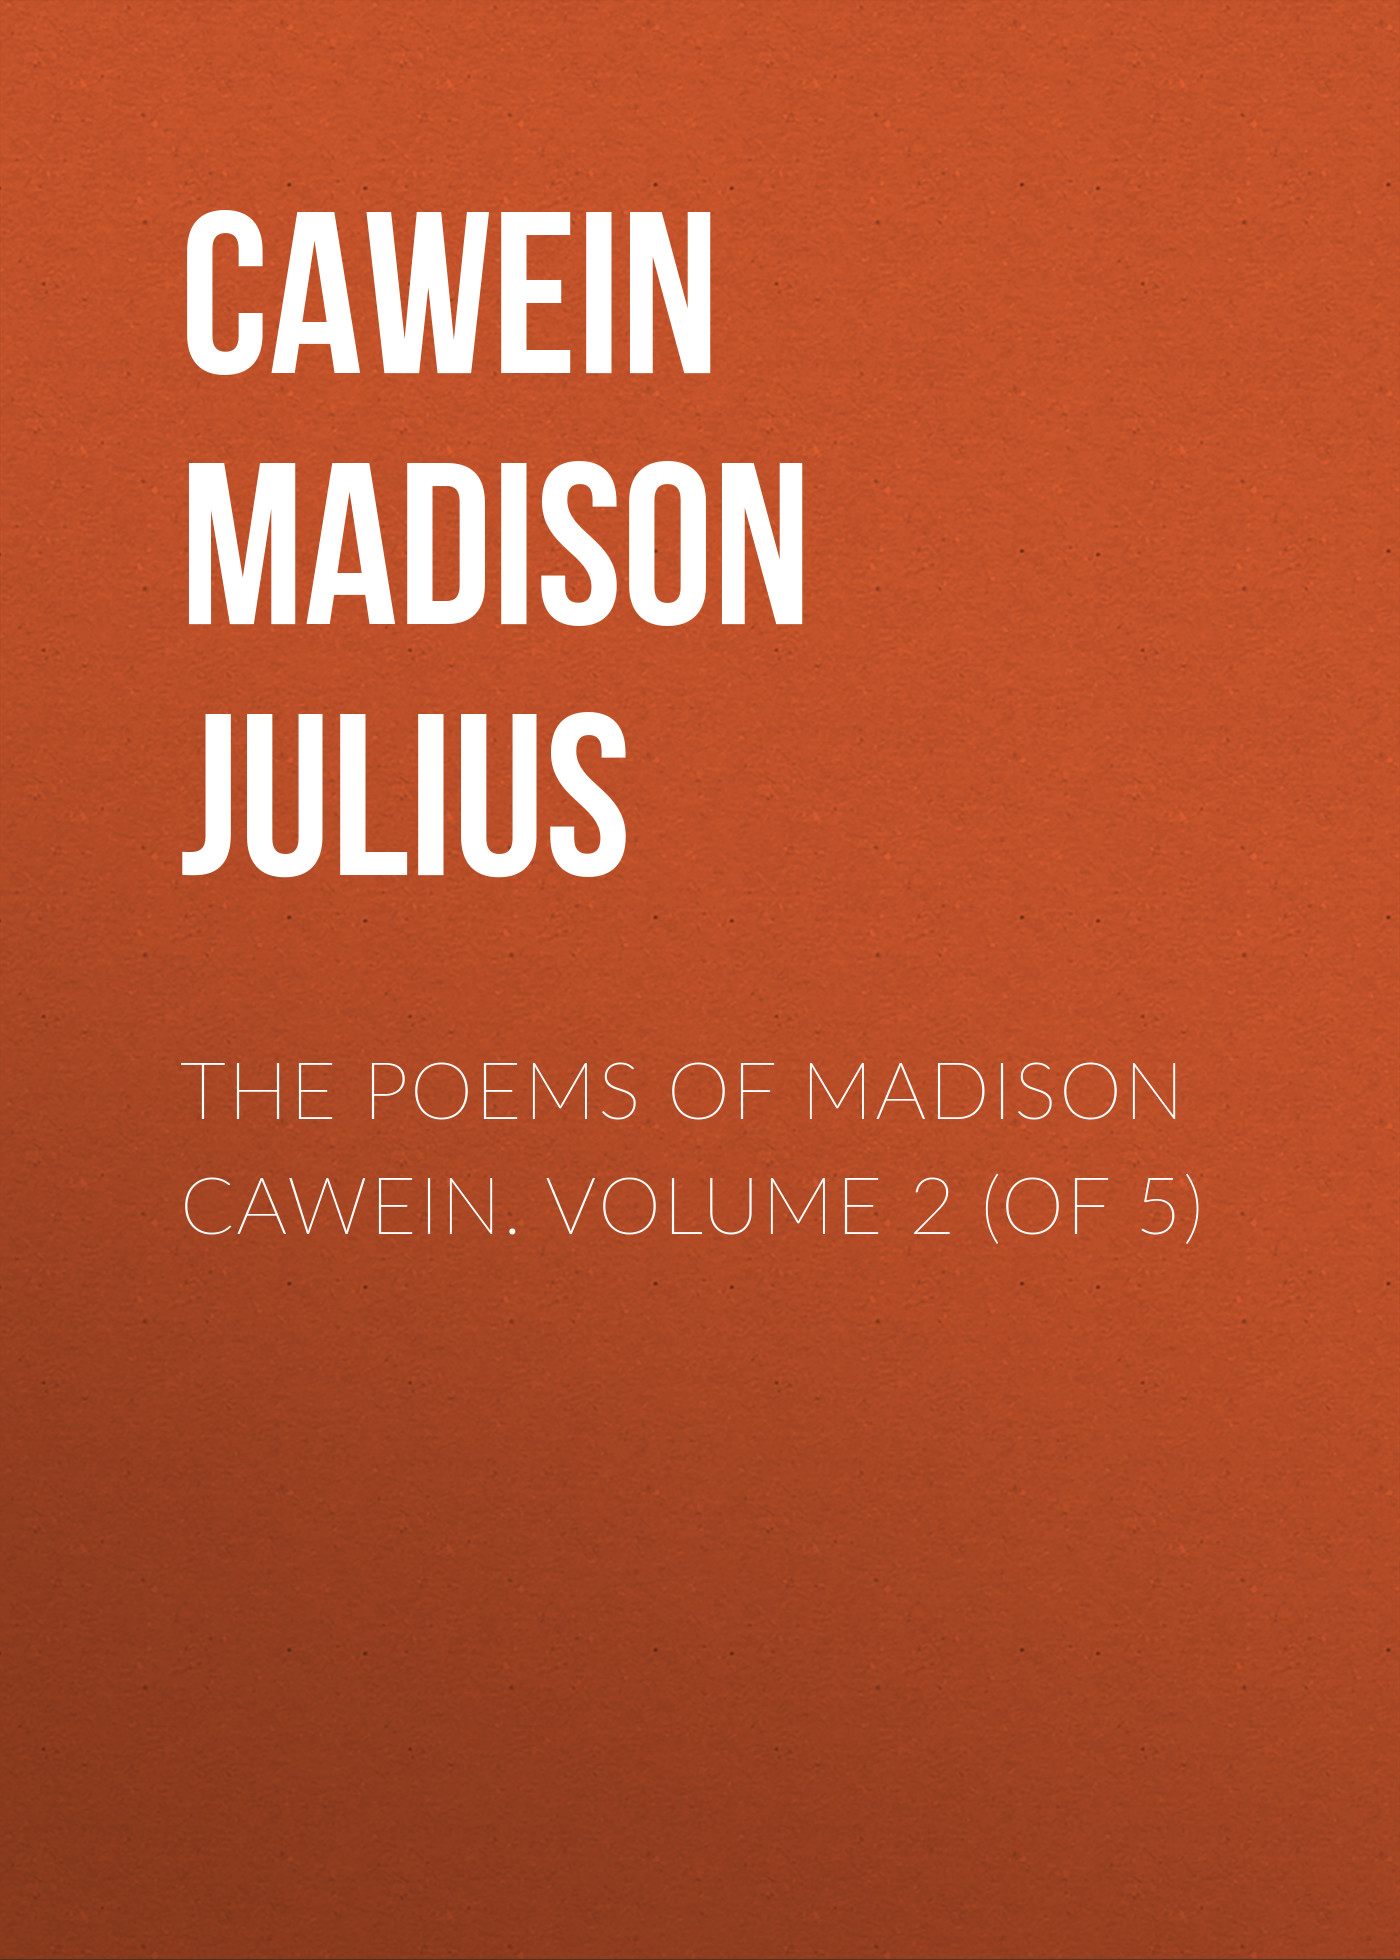 Cawein Madison Julius The Poems of Madison Cawein. Volume 2 (of 5)